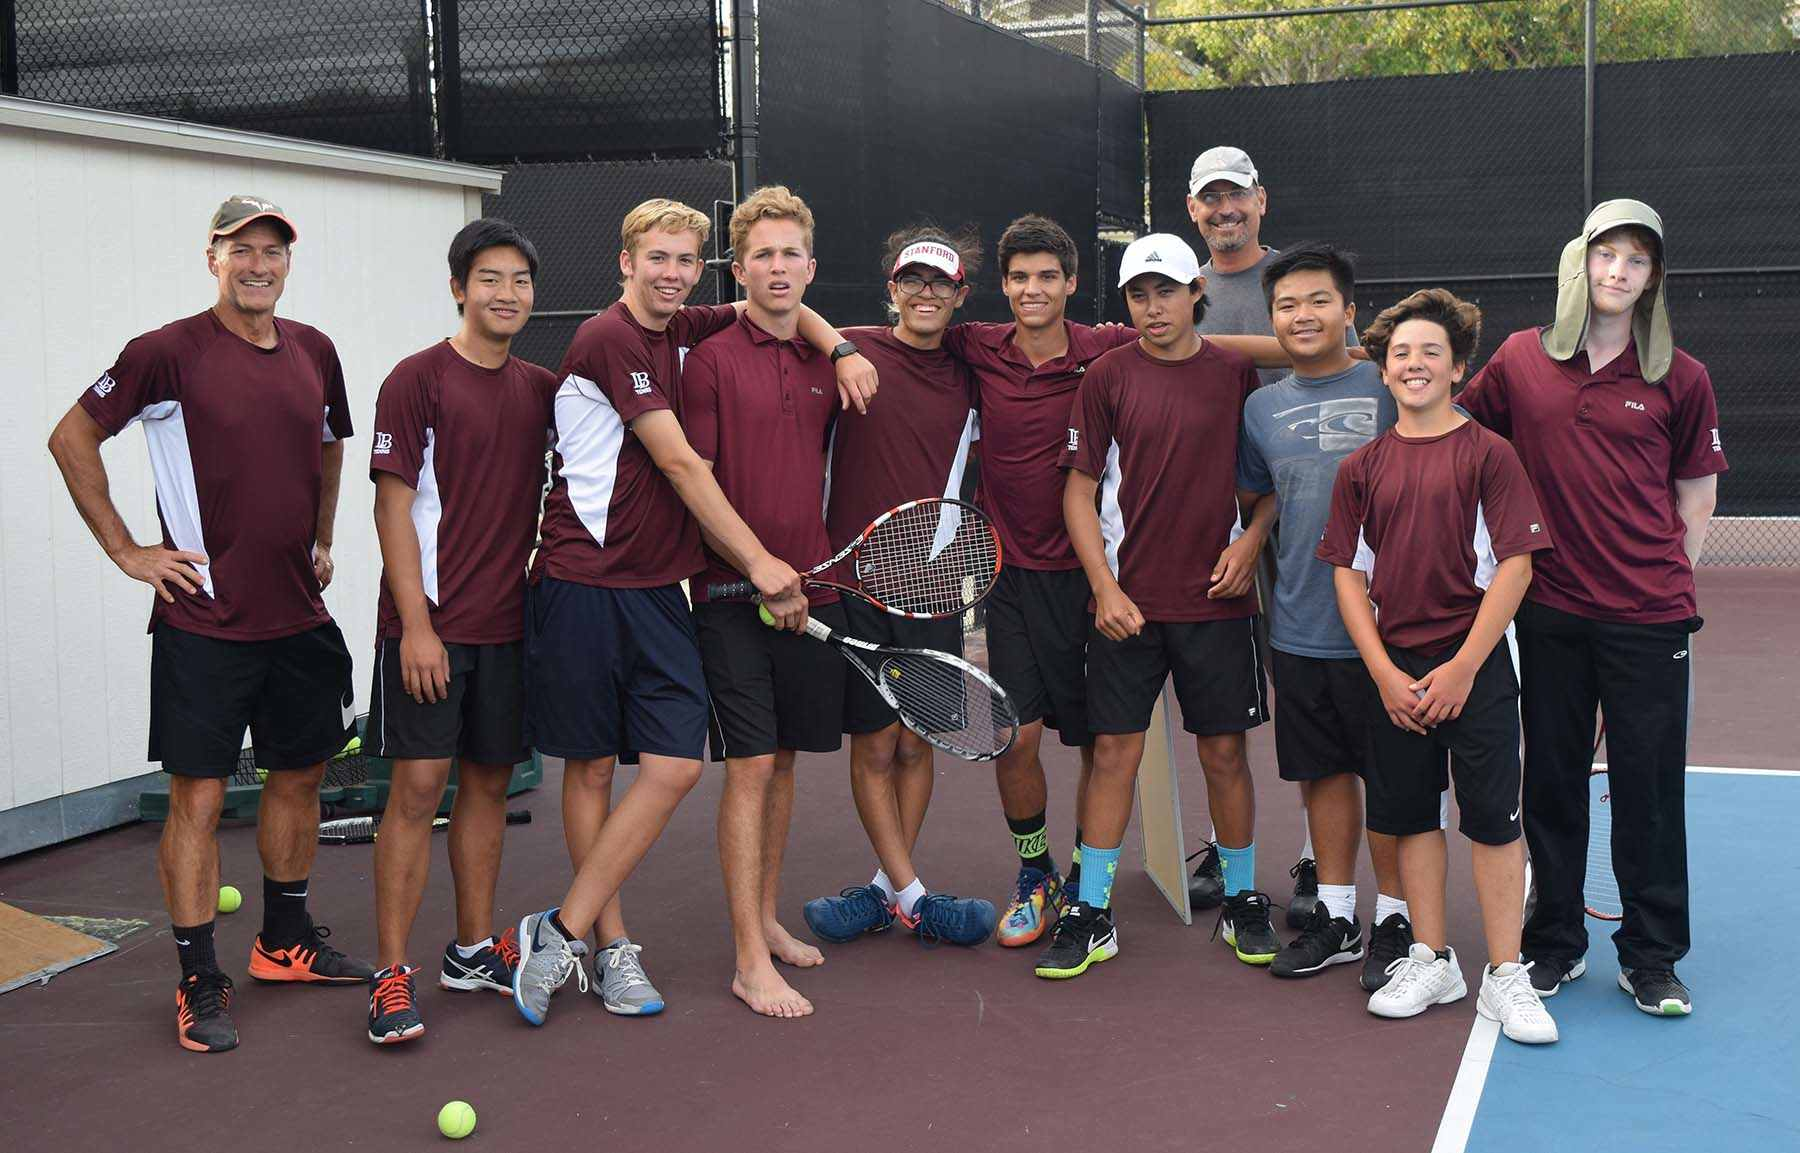 Laguna Beach boys tennis team with head coach Rick Conkey in the back and assistant coach Nicolis Radisay , left, completed their league Tuesday April 25, with an 8-0 record defeating all teams in the league. They head to CIF play-offs next week. Photo by Marilynn Young